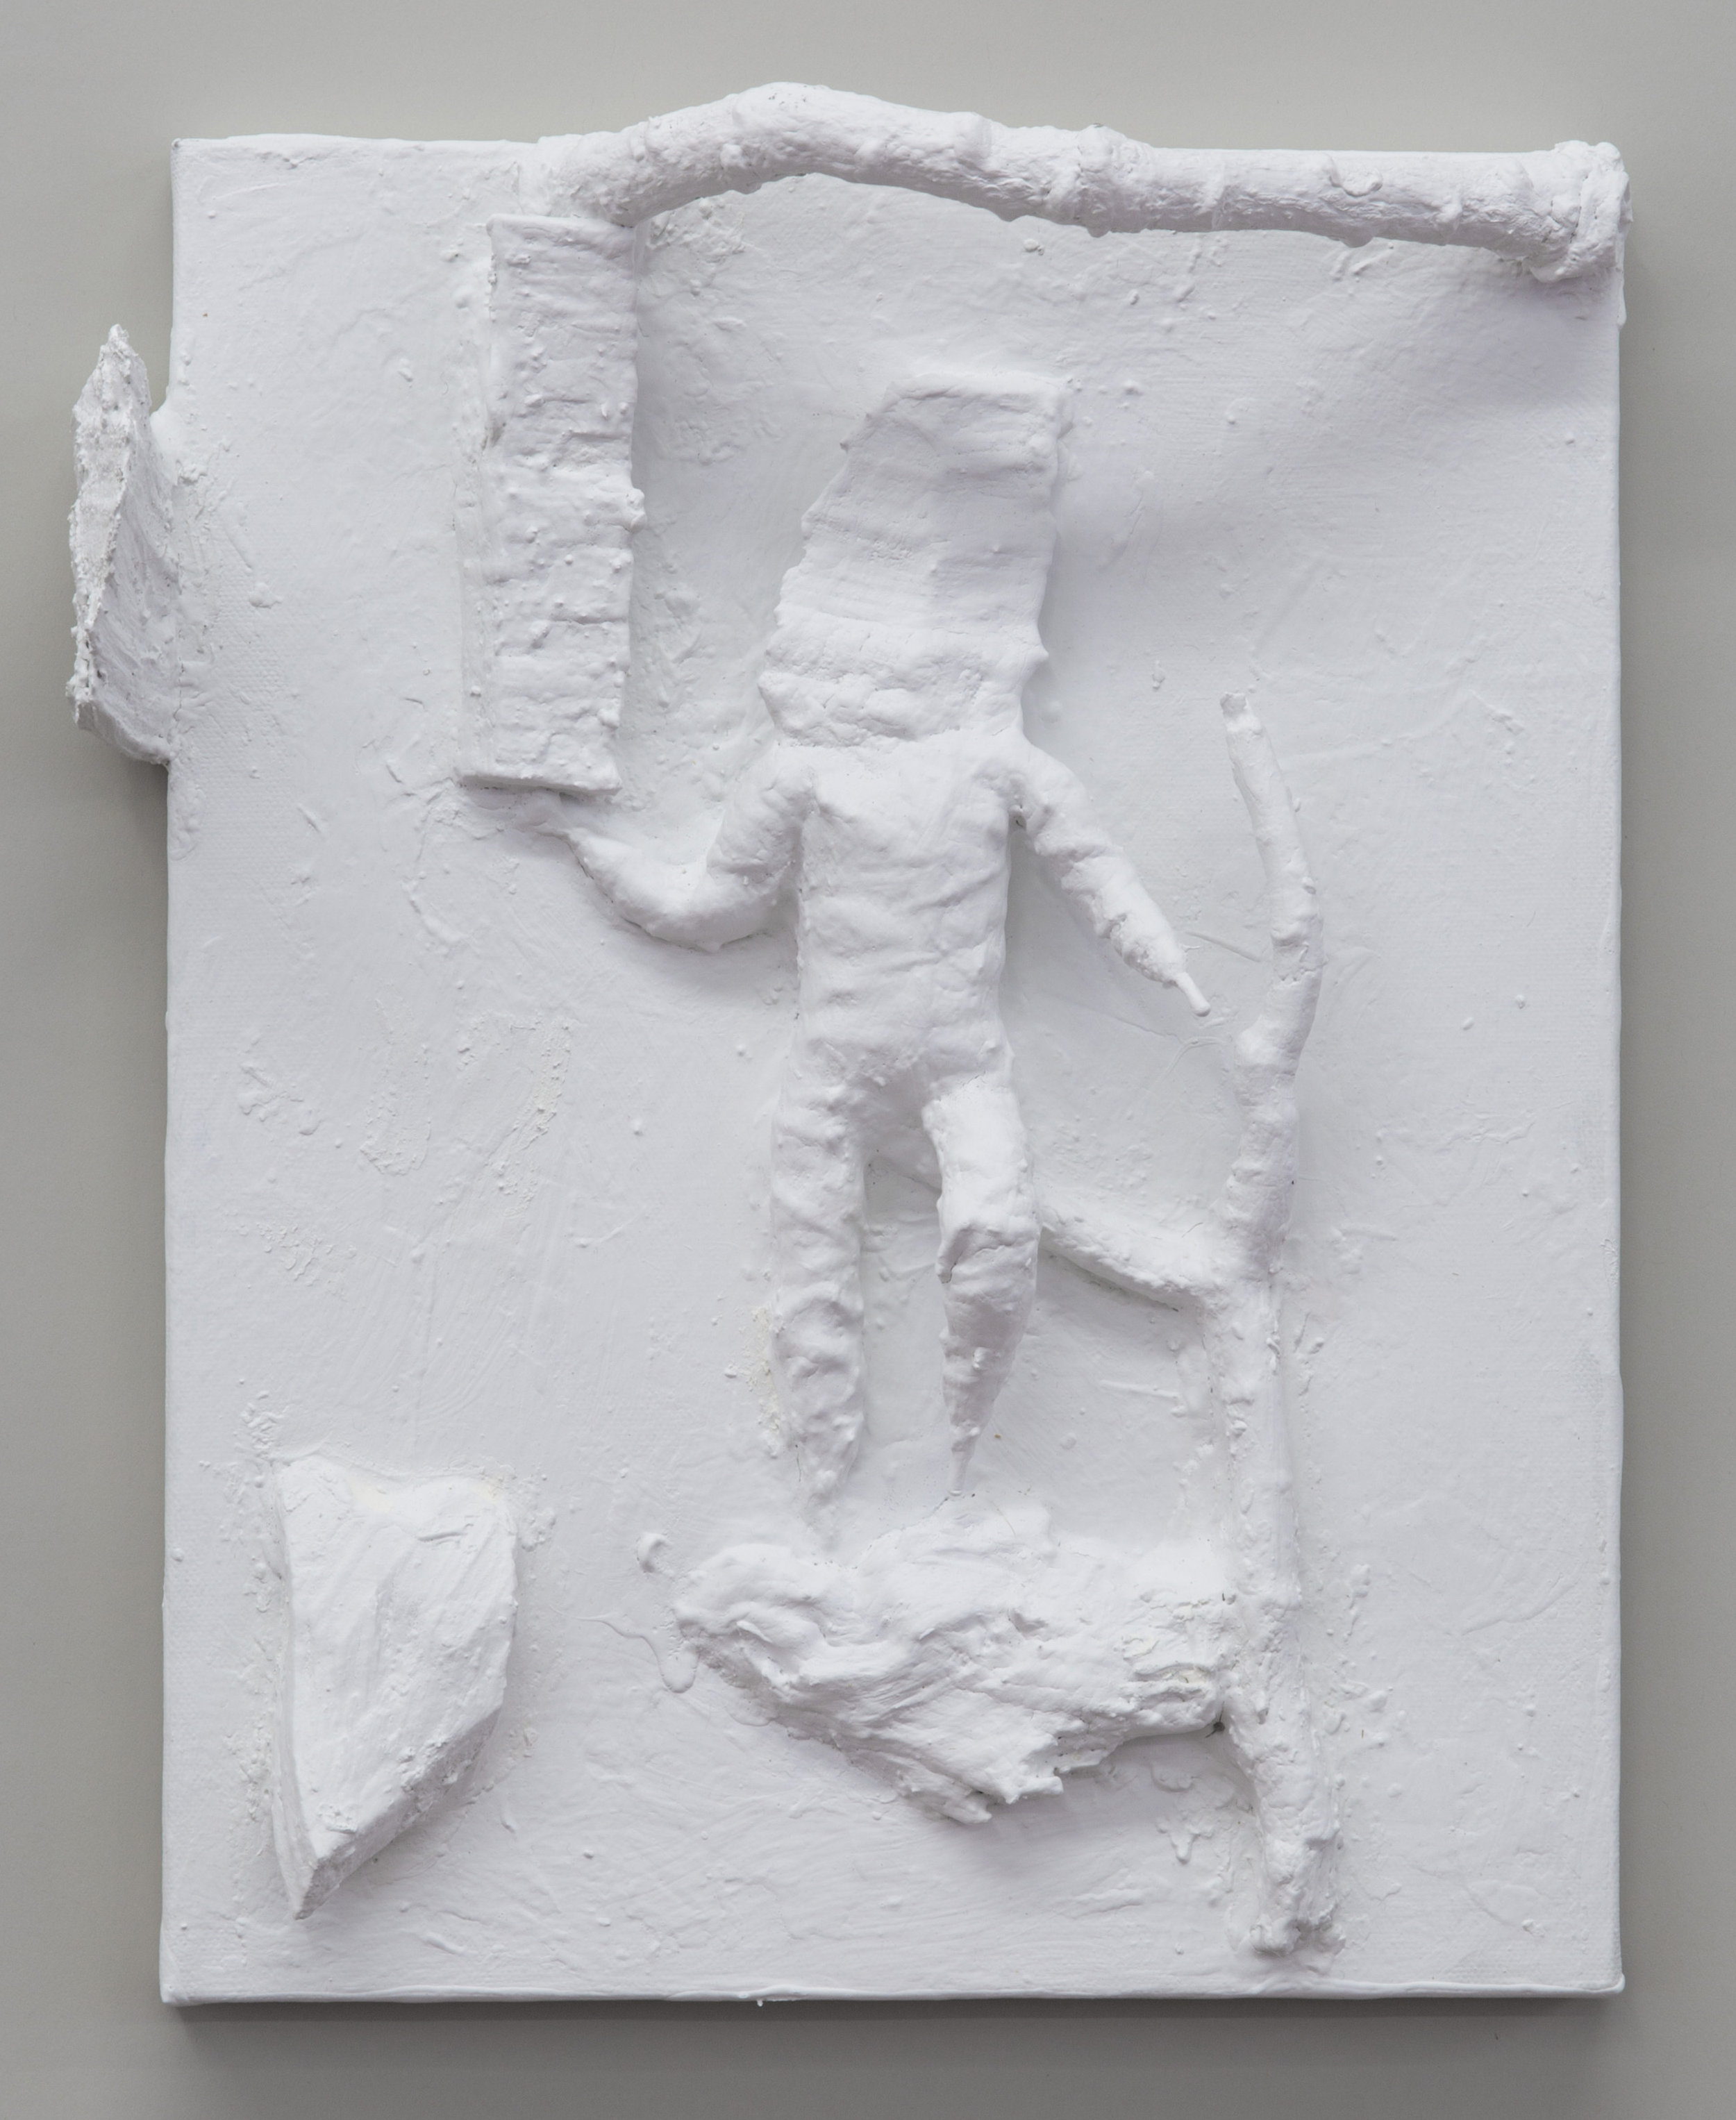 Untitled , 2015 painted wood and various materials 14 5⁄8 x 11 3⁄4 x 3 3⁄4 in